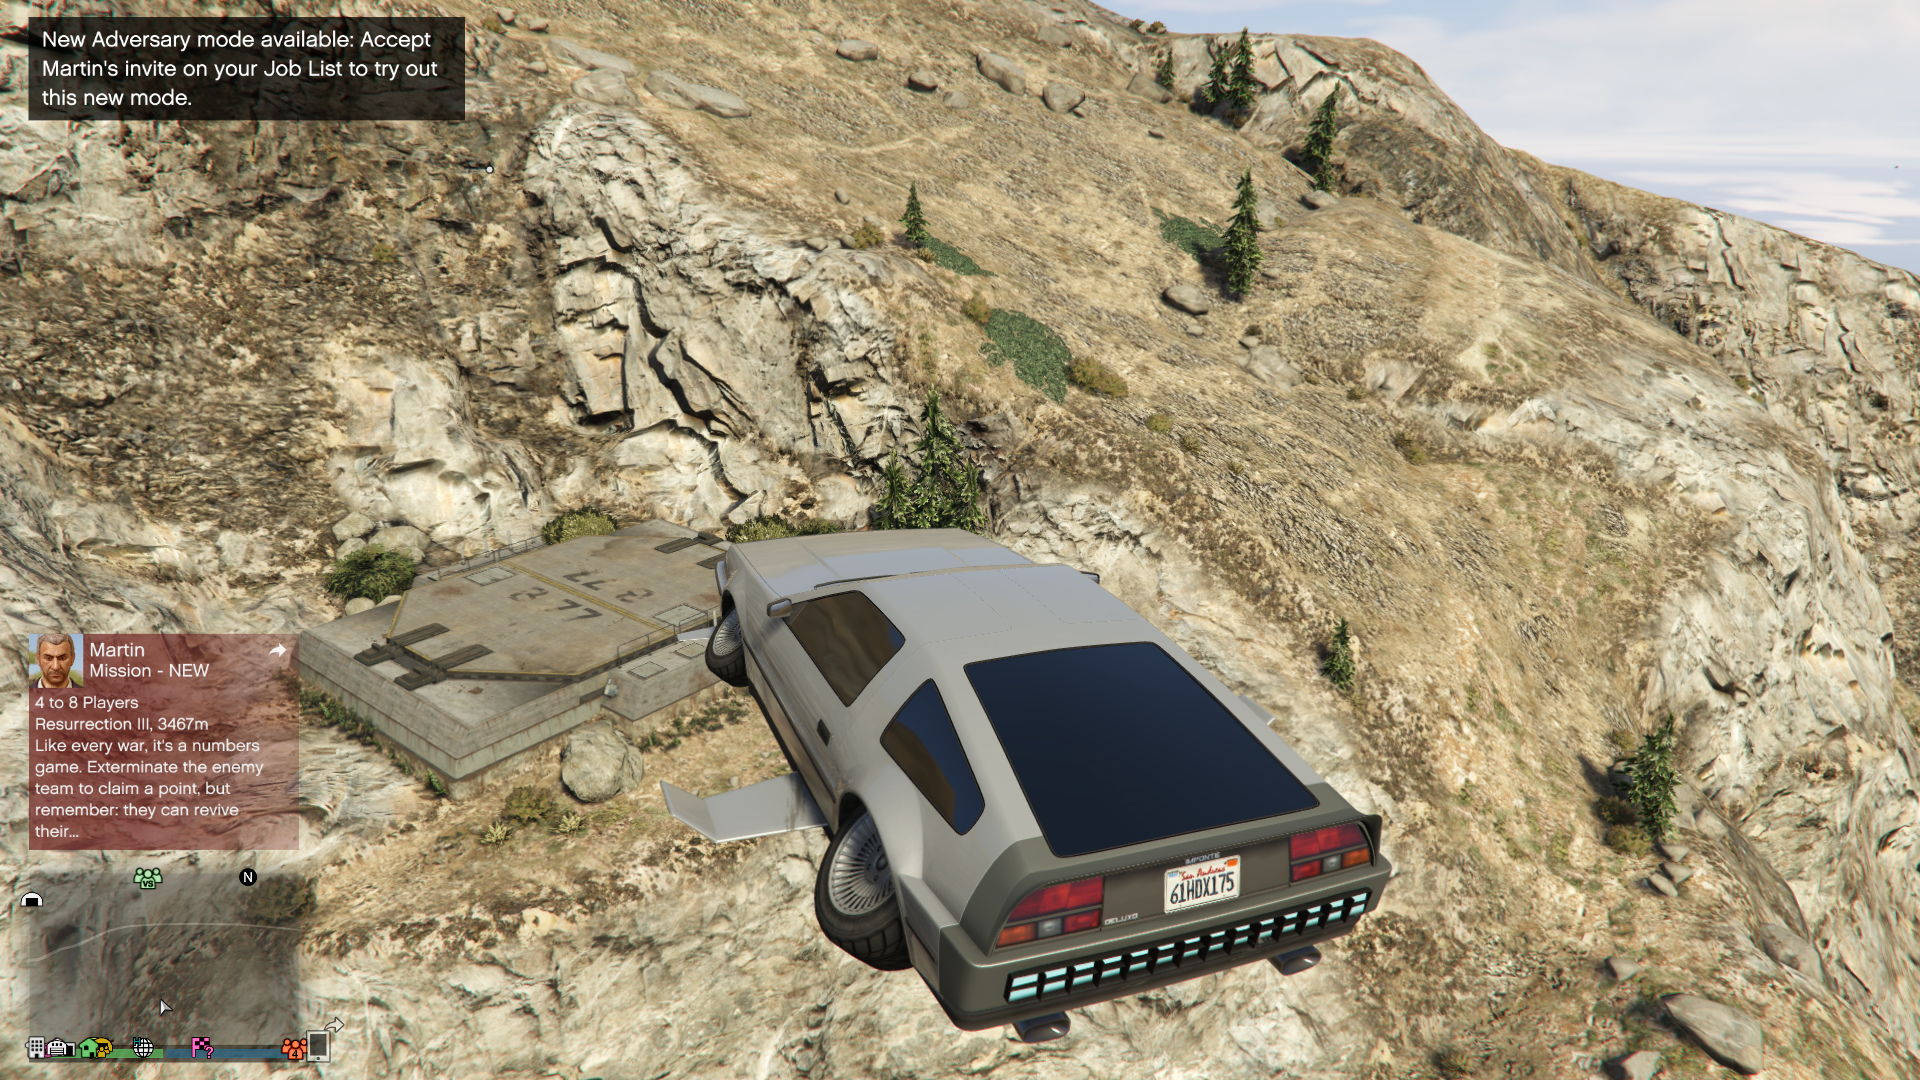 How long has this been here? Is it part of the Doomsday Heist